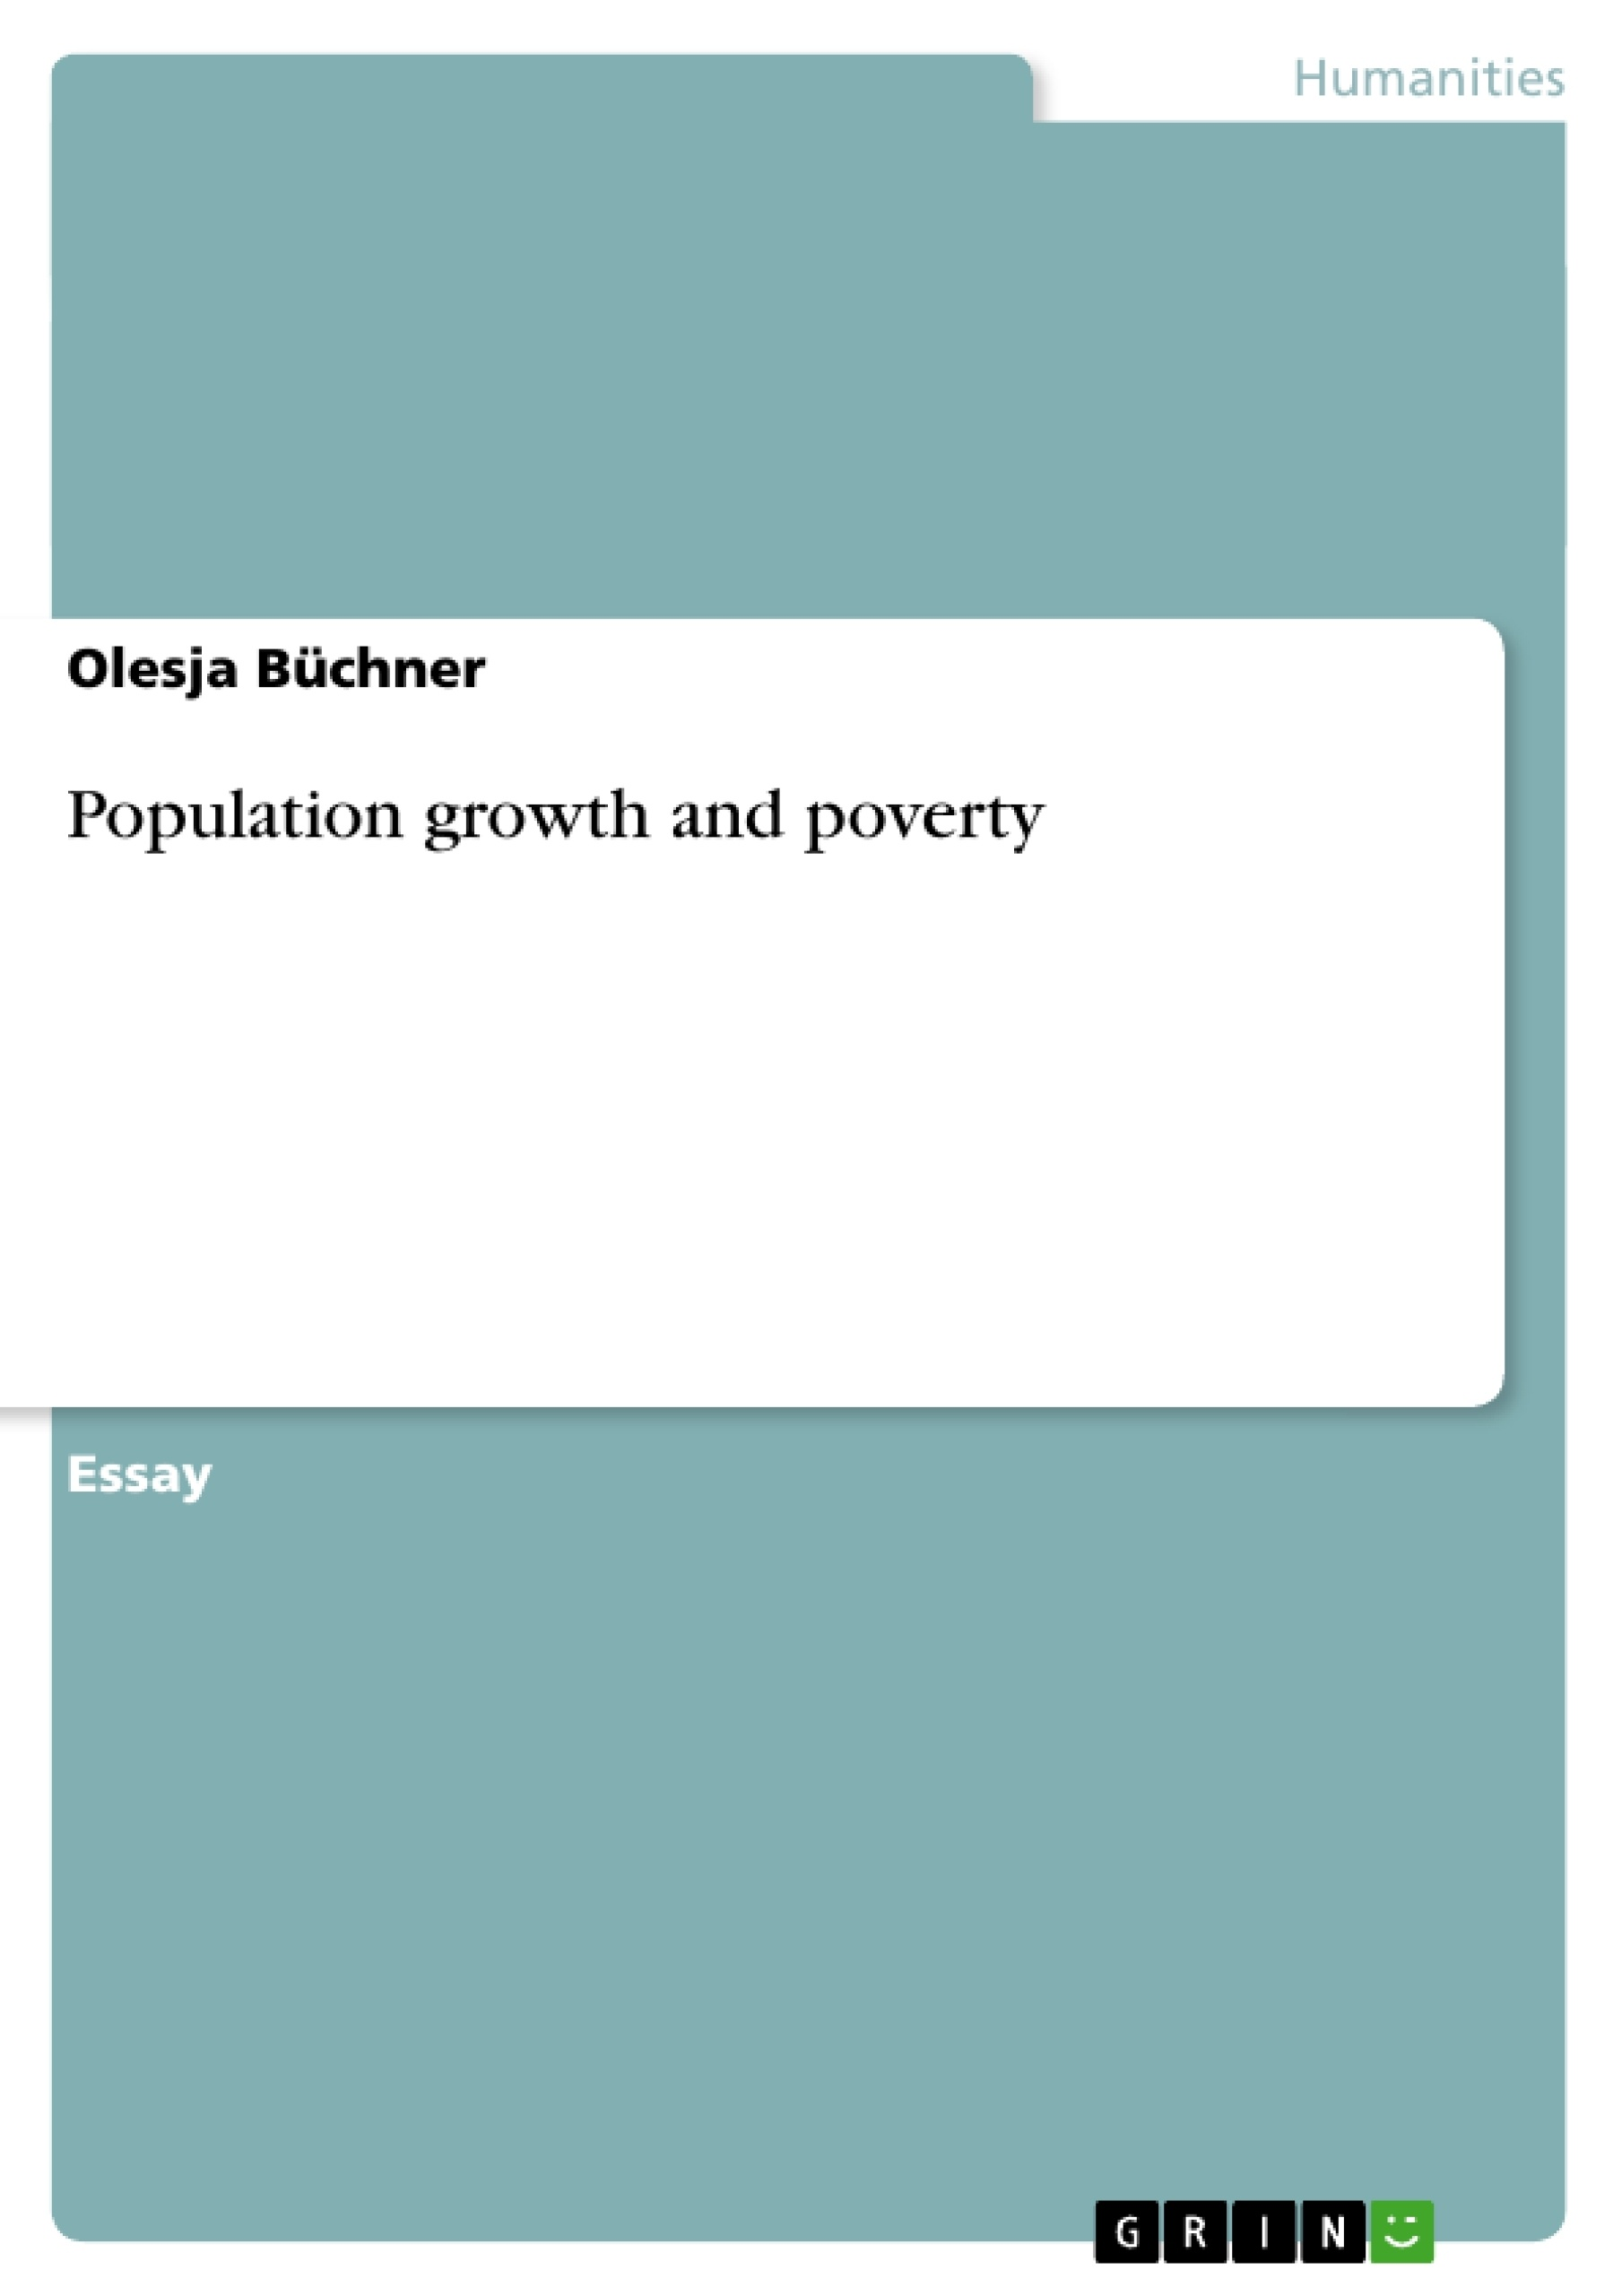 Title: Population growth and poverty